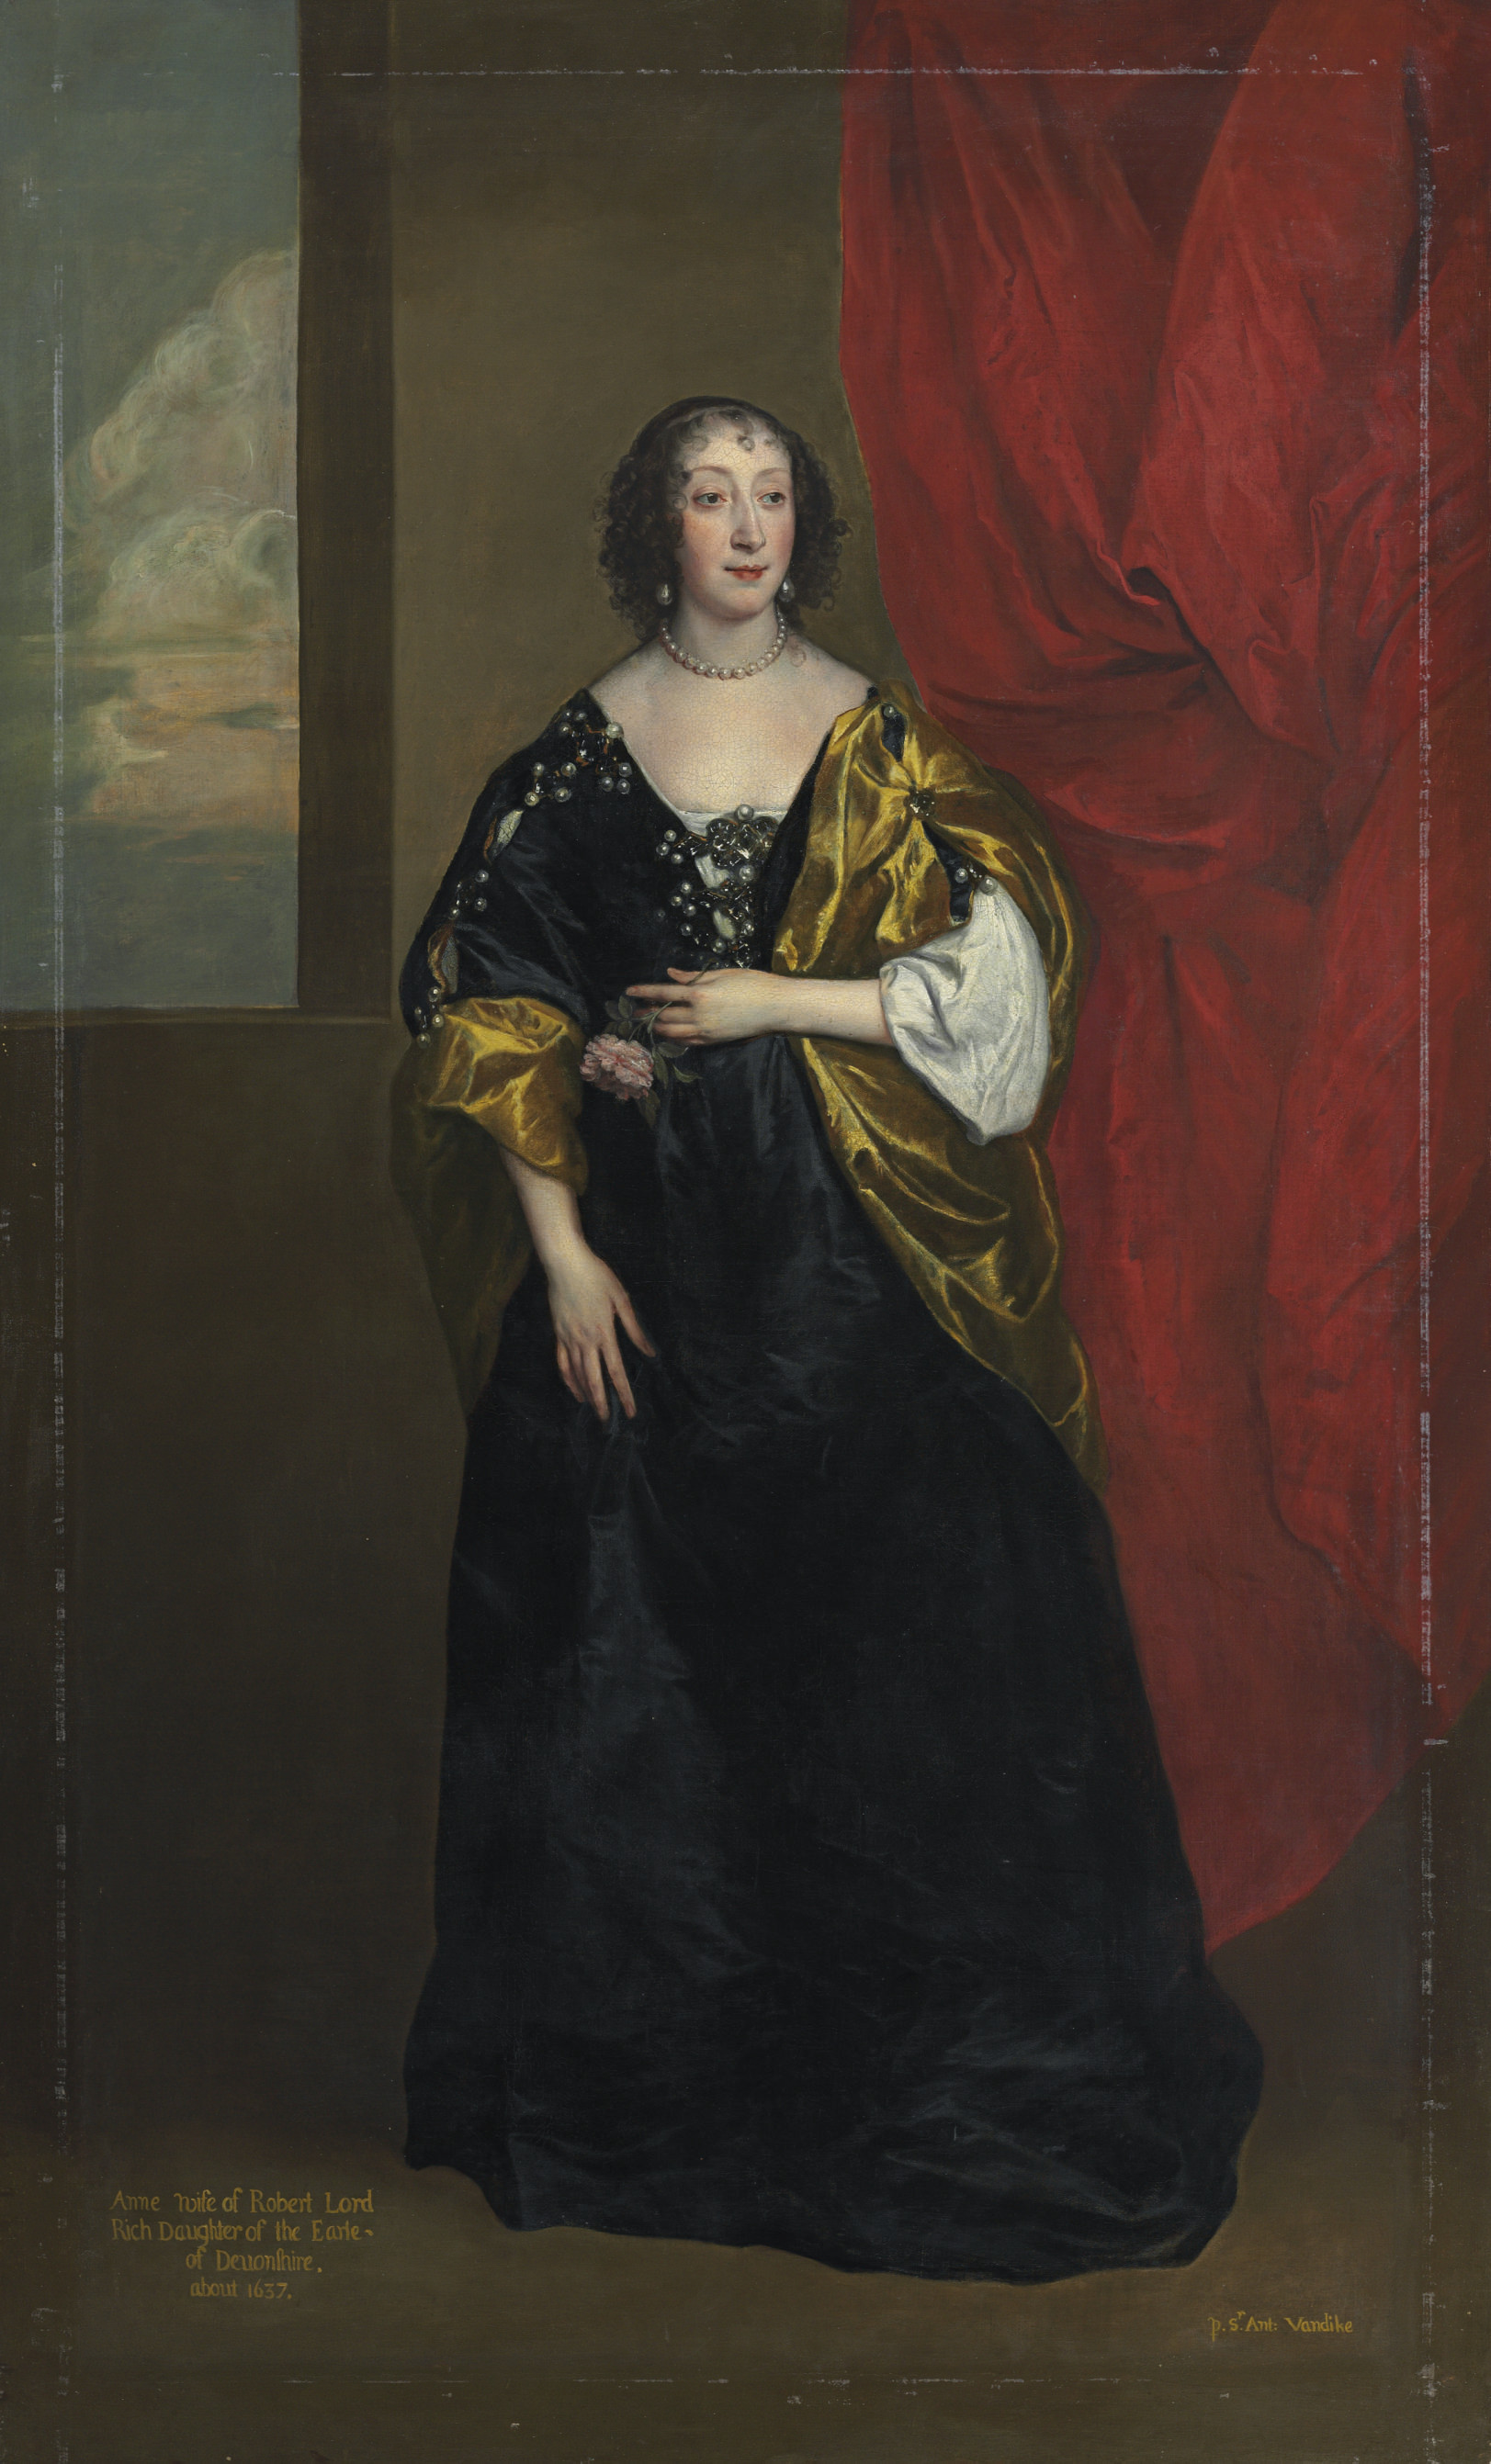 Portrait of Anne Cavendish, Lady Rich (1612-1638), full-length, in a black dress with yellow slashed sleeves, a yellow stole, and a pearl necklace and earrings, holding a rose, by a red draped curtain